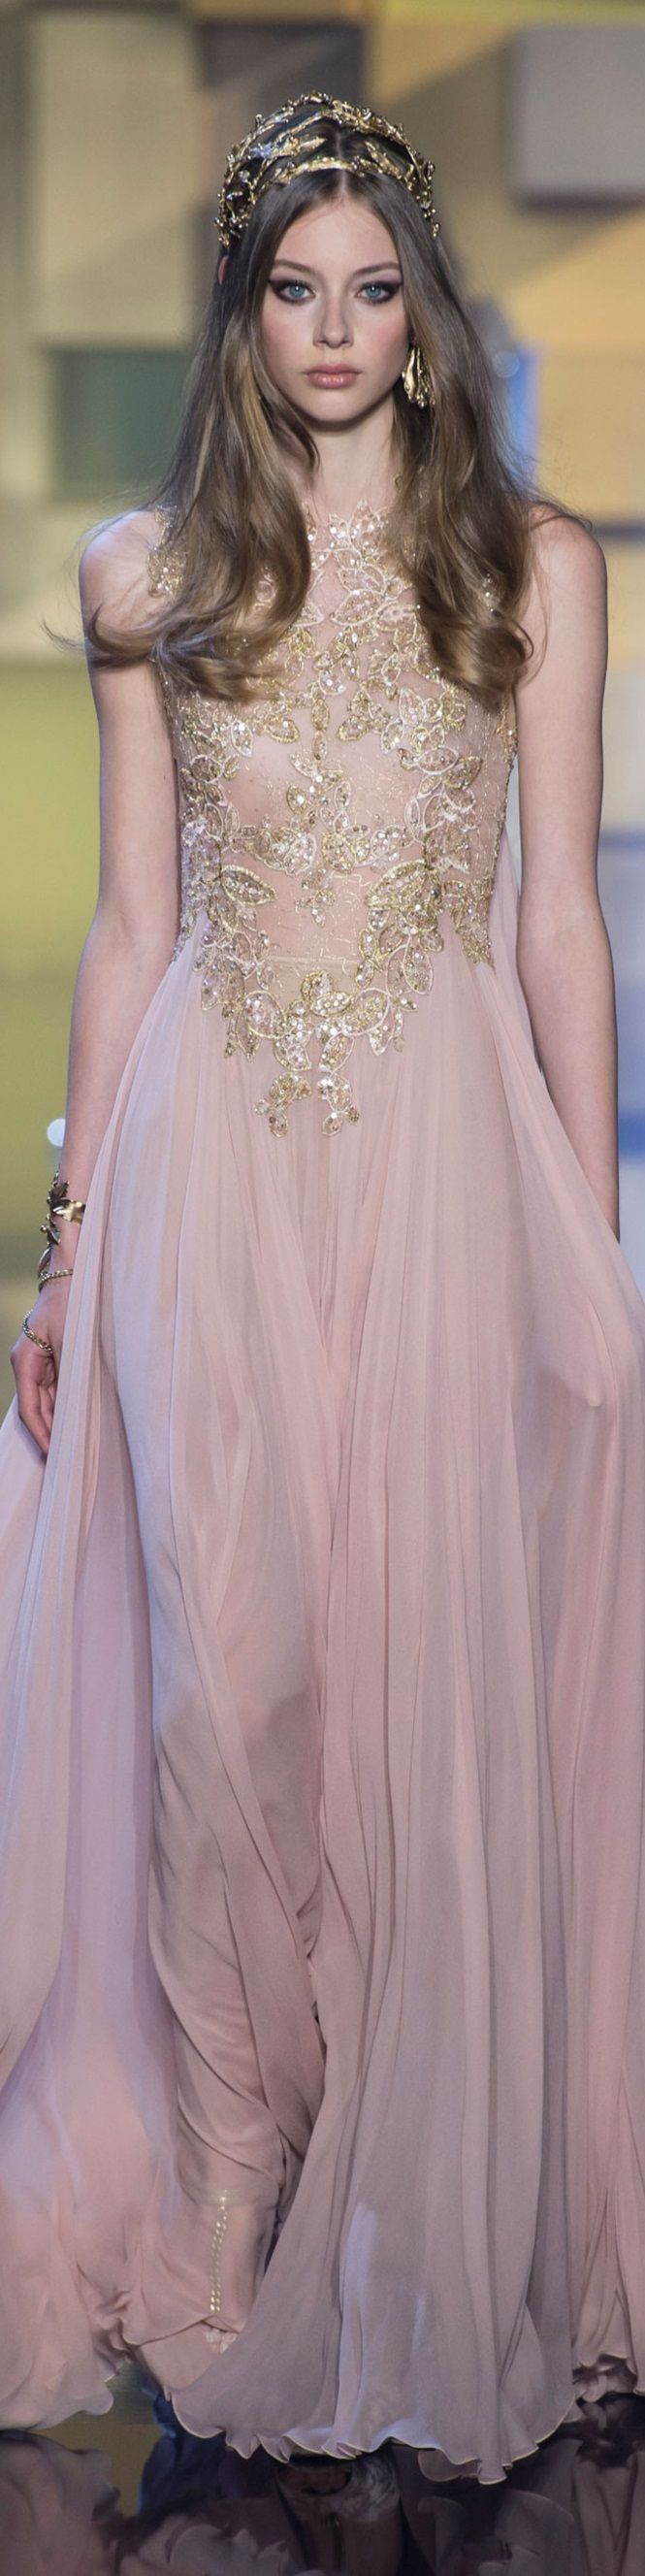 Pin by jamila blackwellbaccar on jami pinterest pink gowns